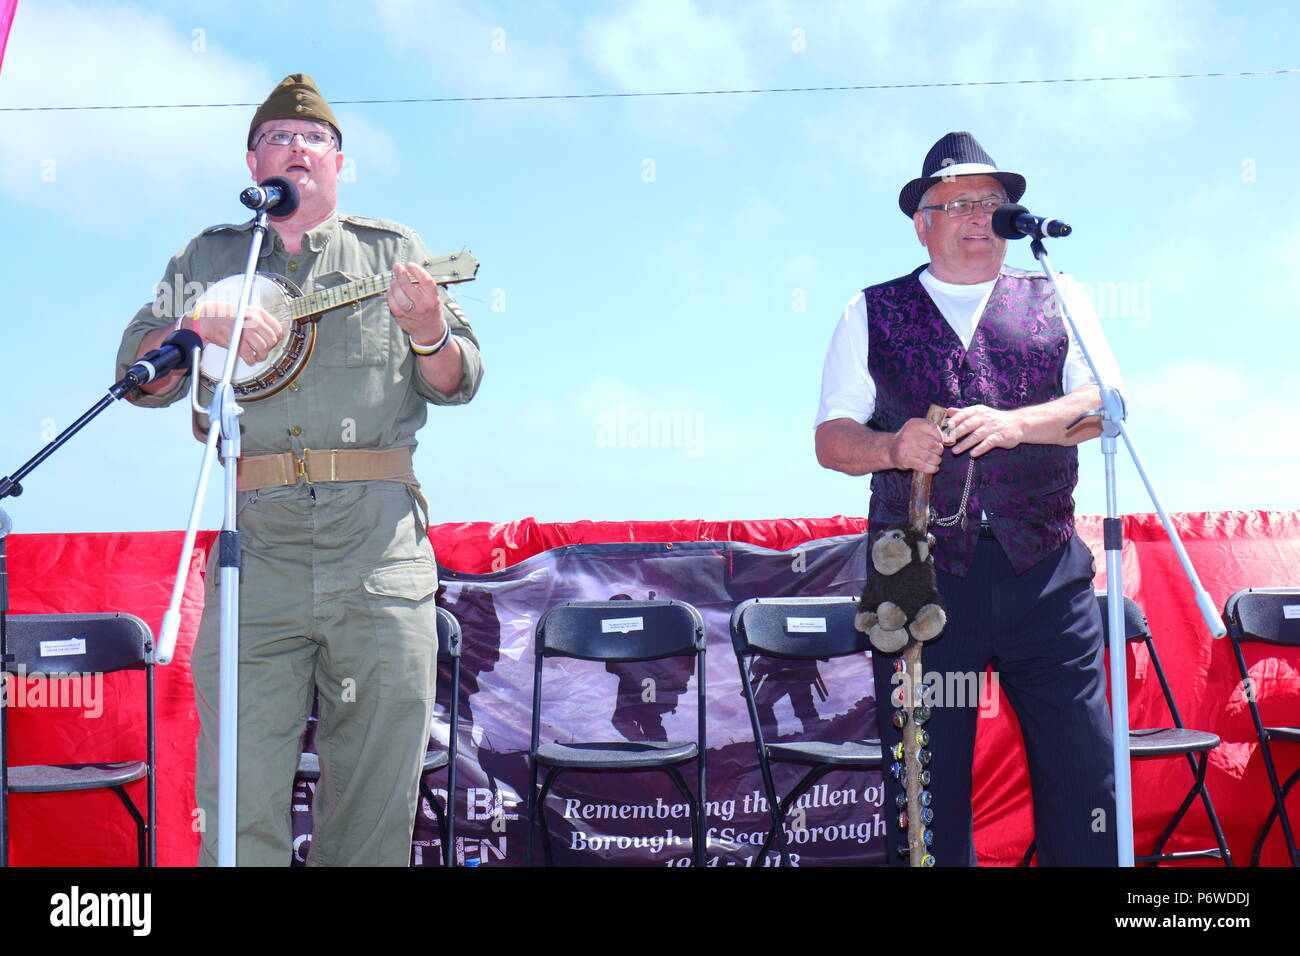 Vintage singers Chris Myers & Auld Tom put on a show at Scarborough's annual Armed Forces Day event. - Stock Image